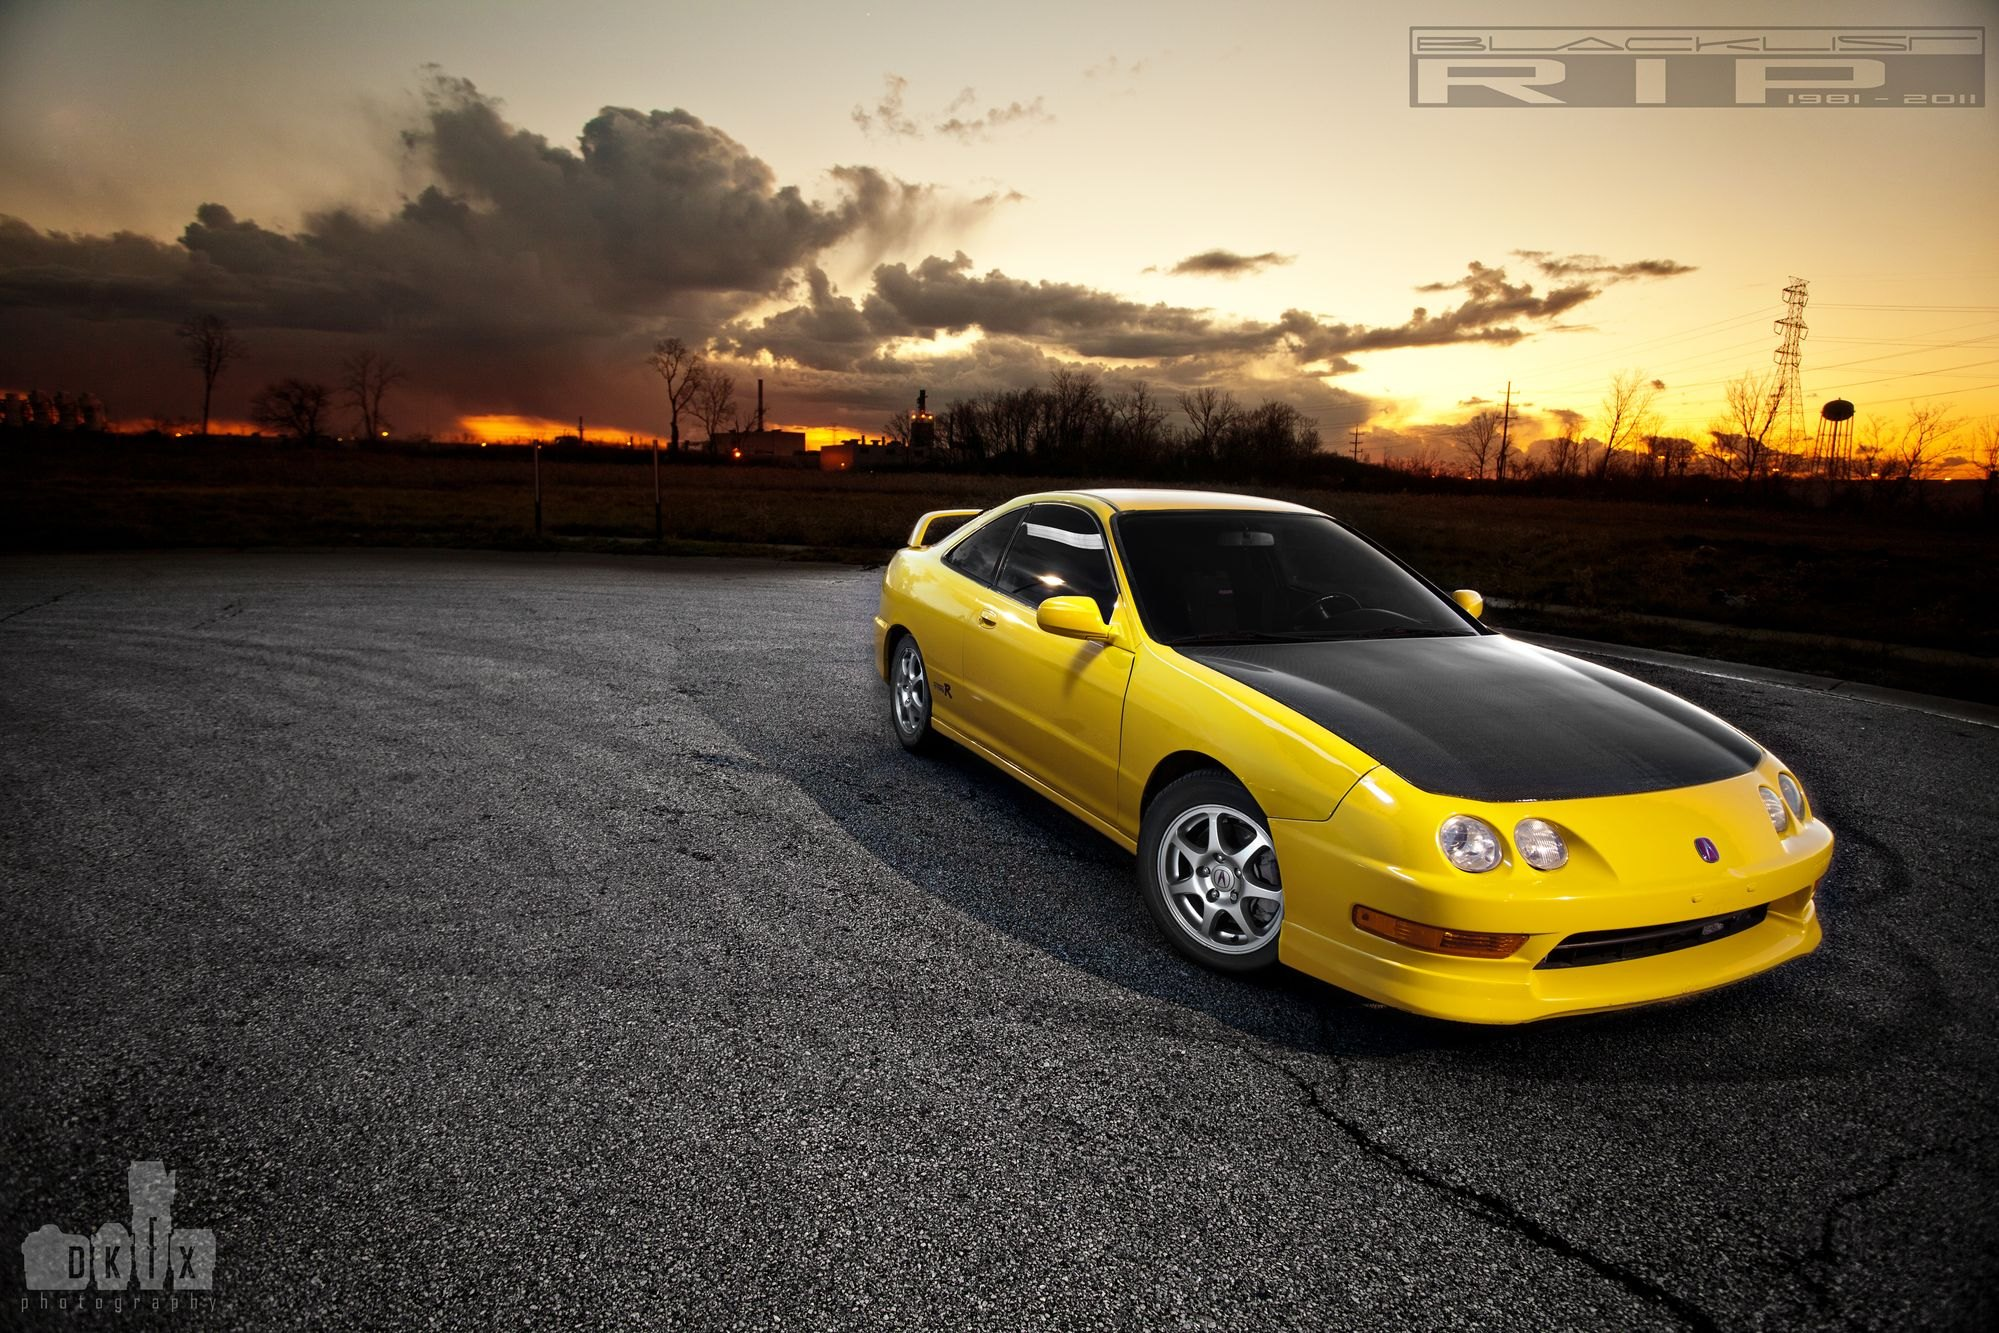 Yellow Acura Integra Goes In Style Wearing Carbon Fiber Hood CARiD - Acura integra carbon fiber hood